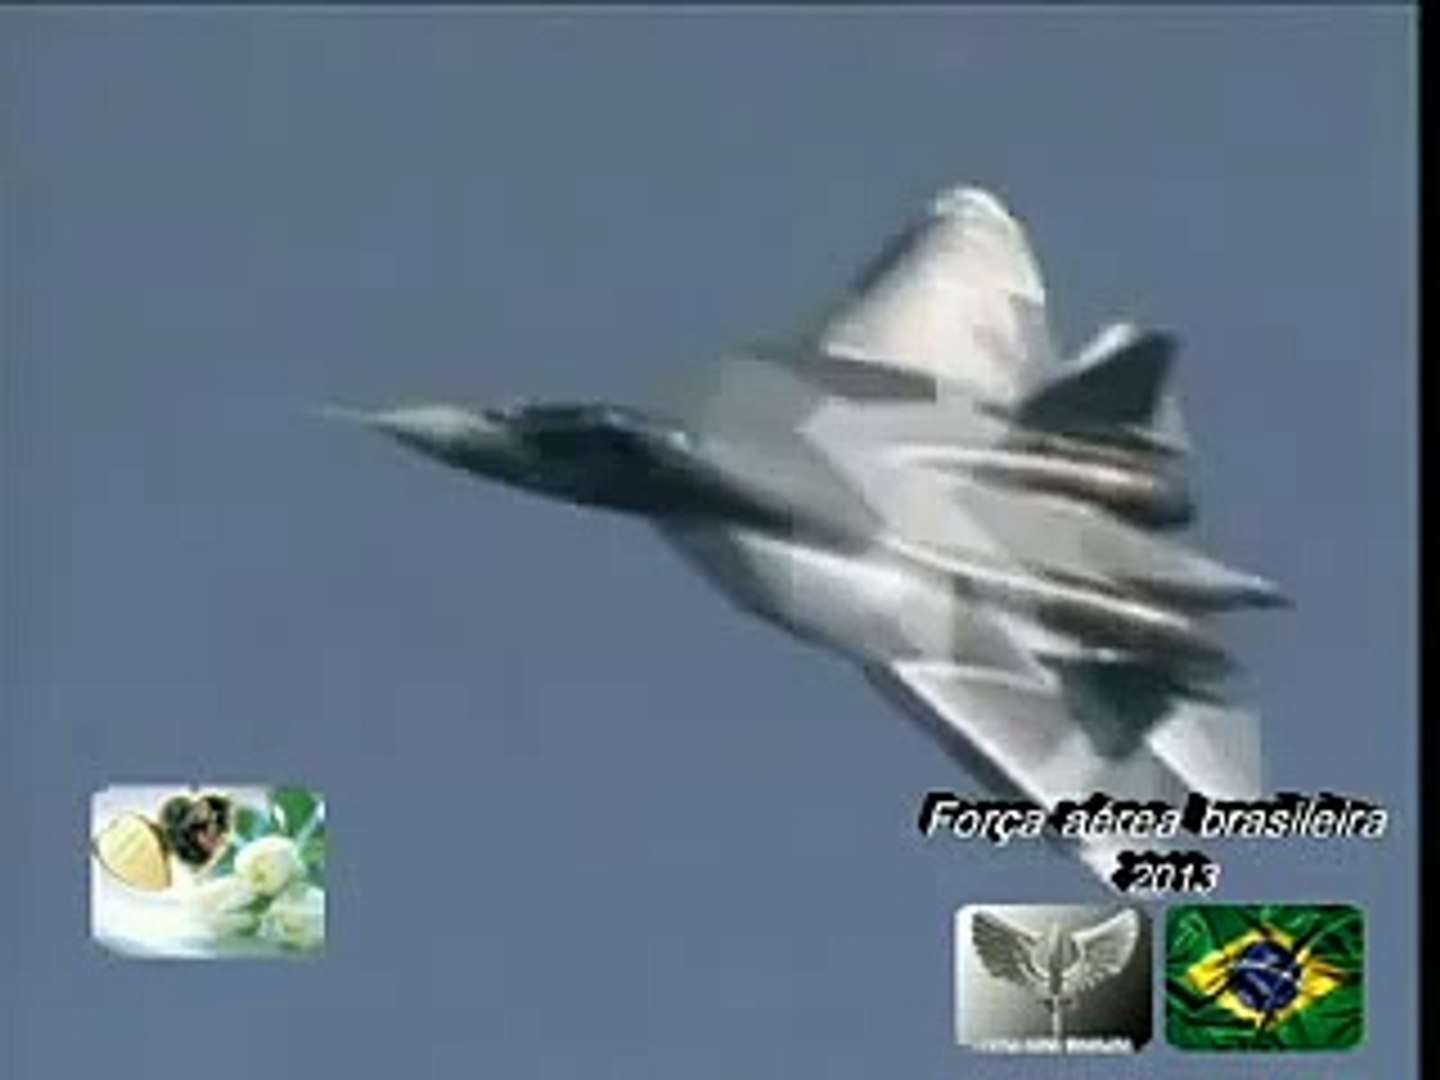 SU-T50 BEST FIGHTER PLANE THE HIDDEN WORLD - FERRARI of fighter aircraft BATTLE STALINGRAD